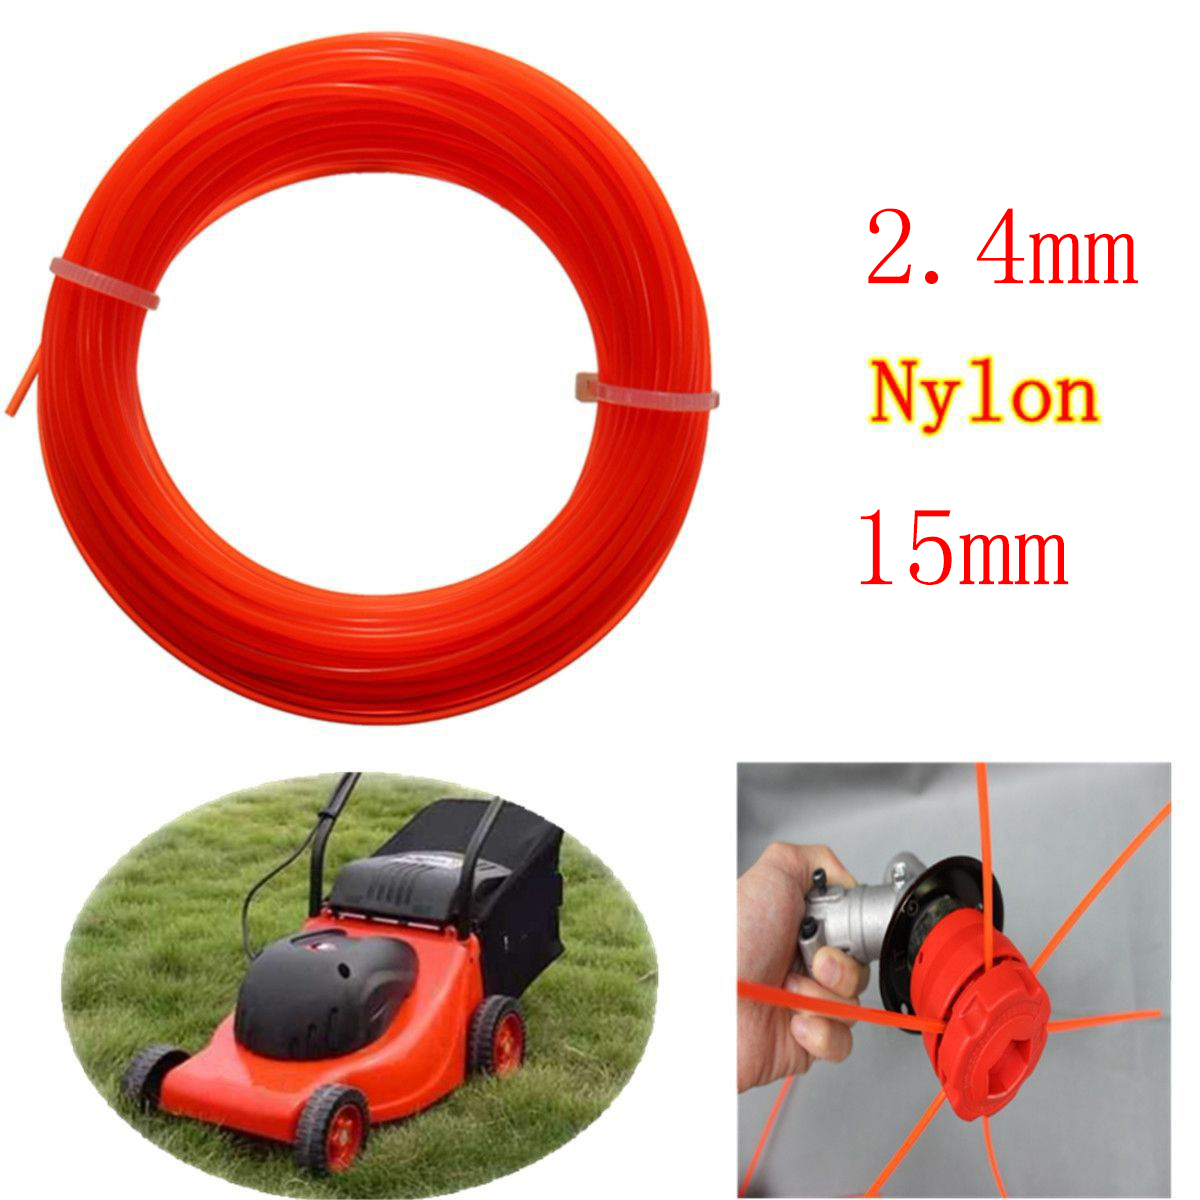 High Quality Grass Cut Strimmer Line Spool Nylon Cord Wire String Grass Trimmer Parts Mayitr Garden Tools 15m x 2.4mm mini garden nylon grass trimmer line light purple 15m